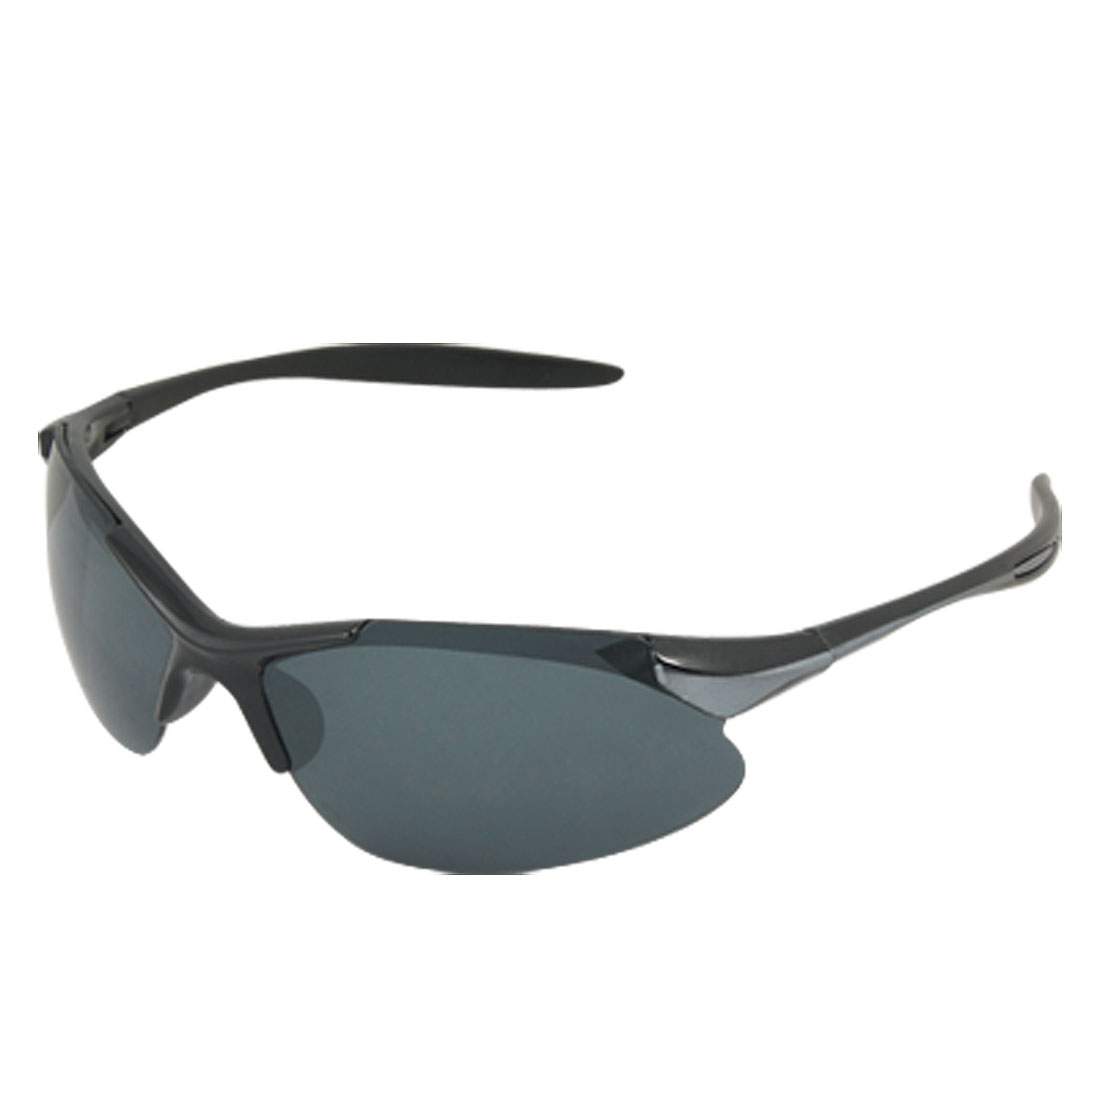 Two Tone Plastic Arms Dark Blue Lens Sports Sunglasses Unisex